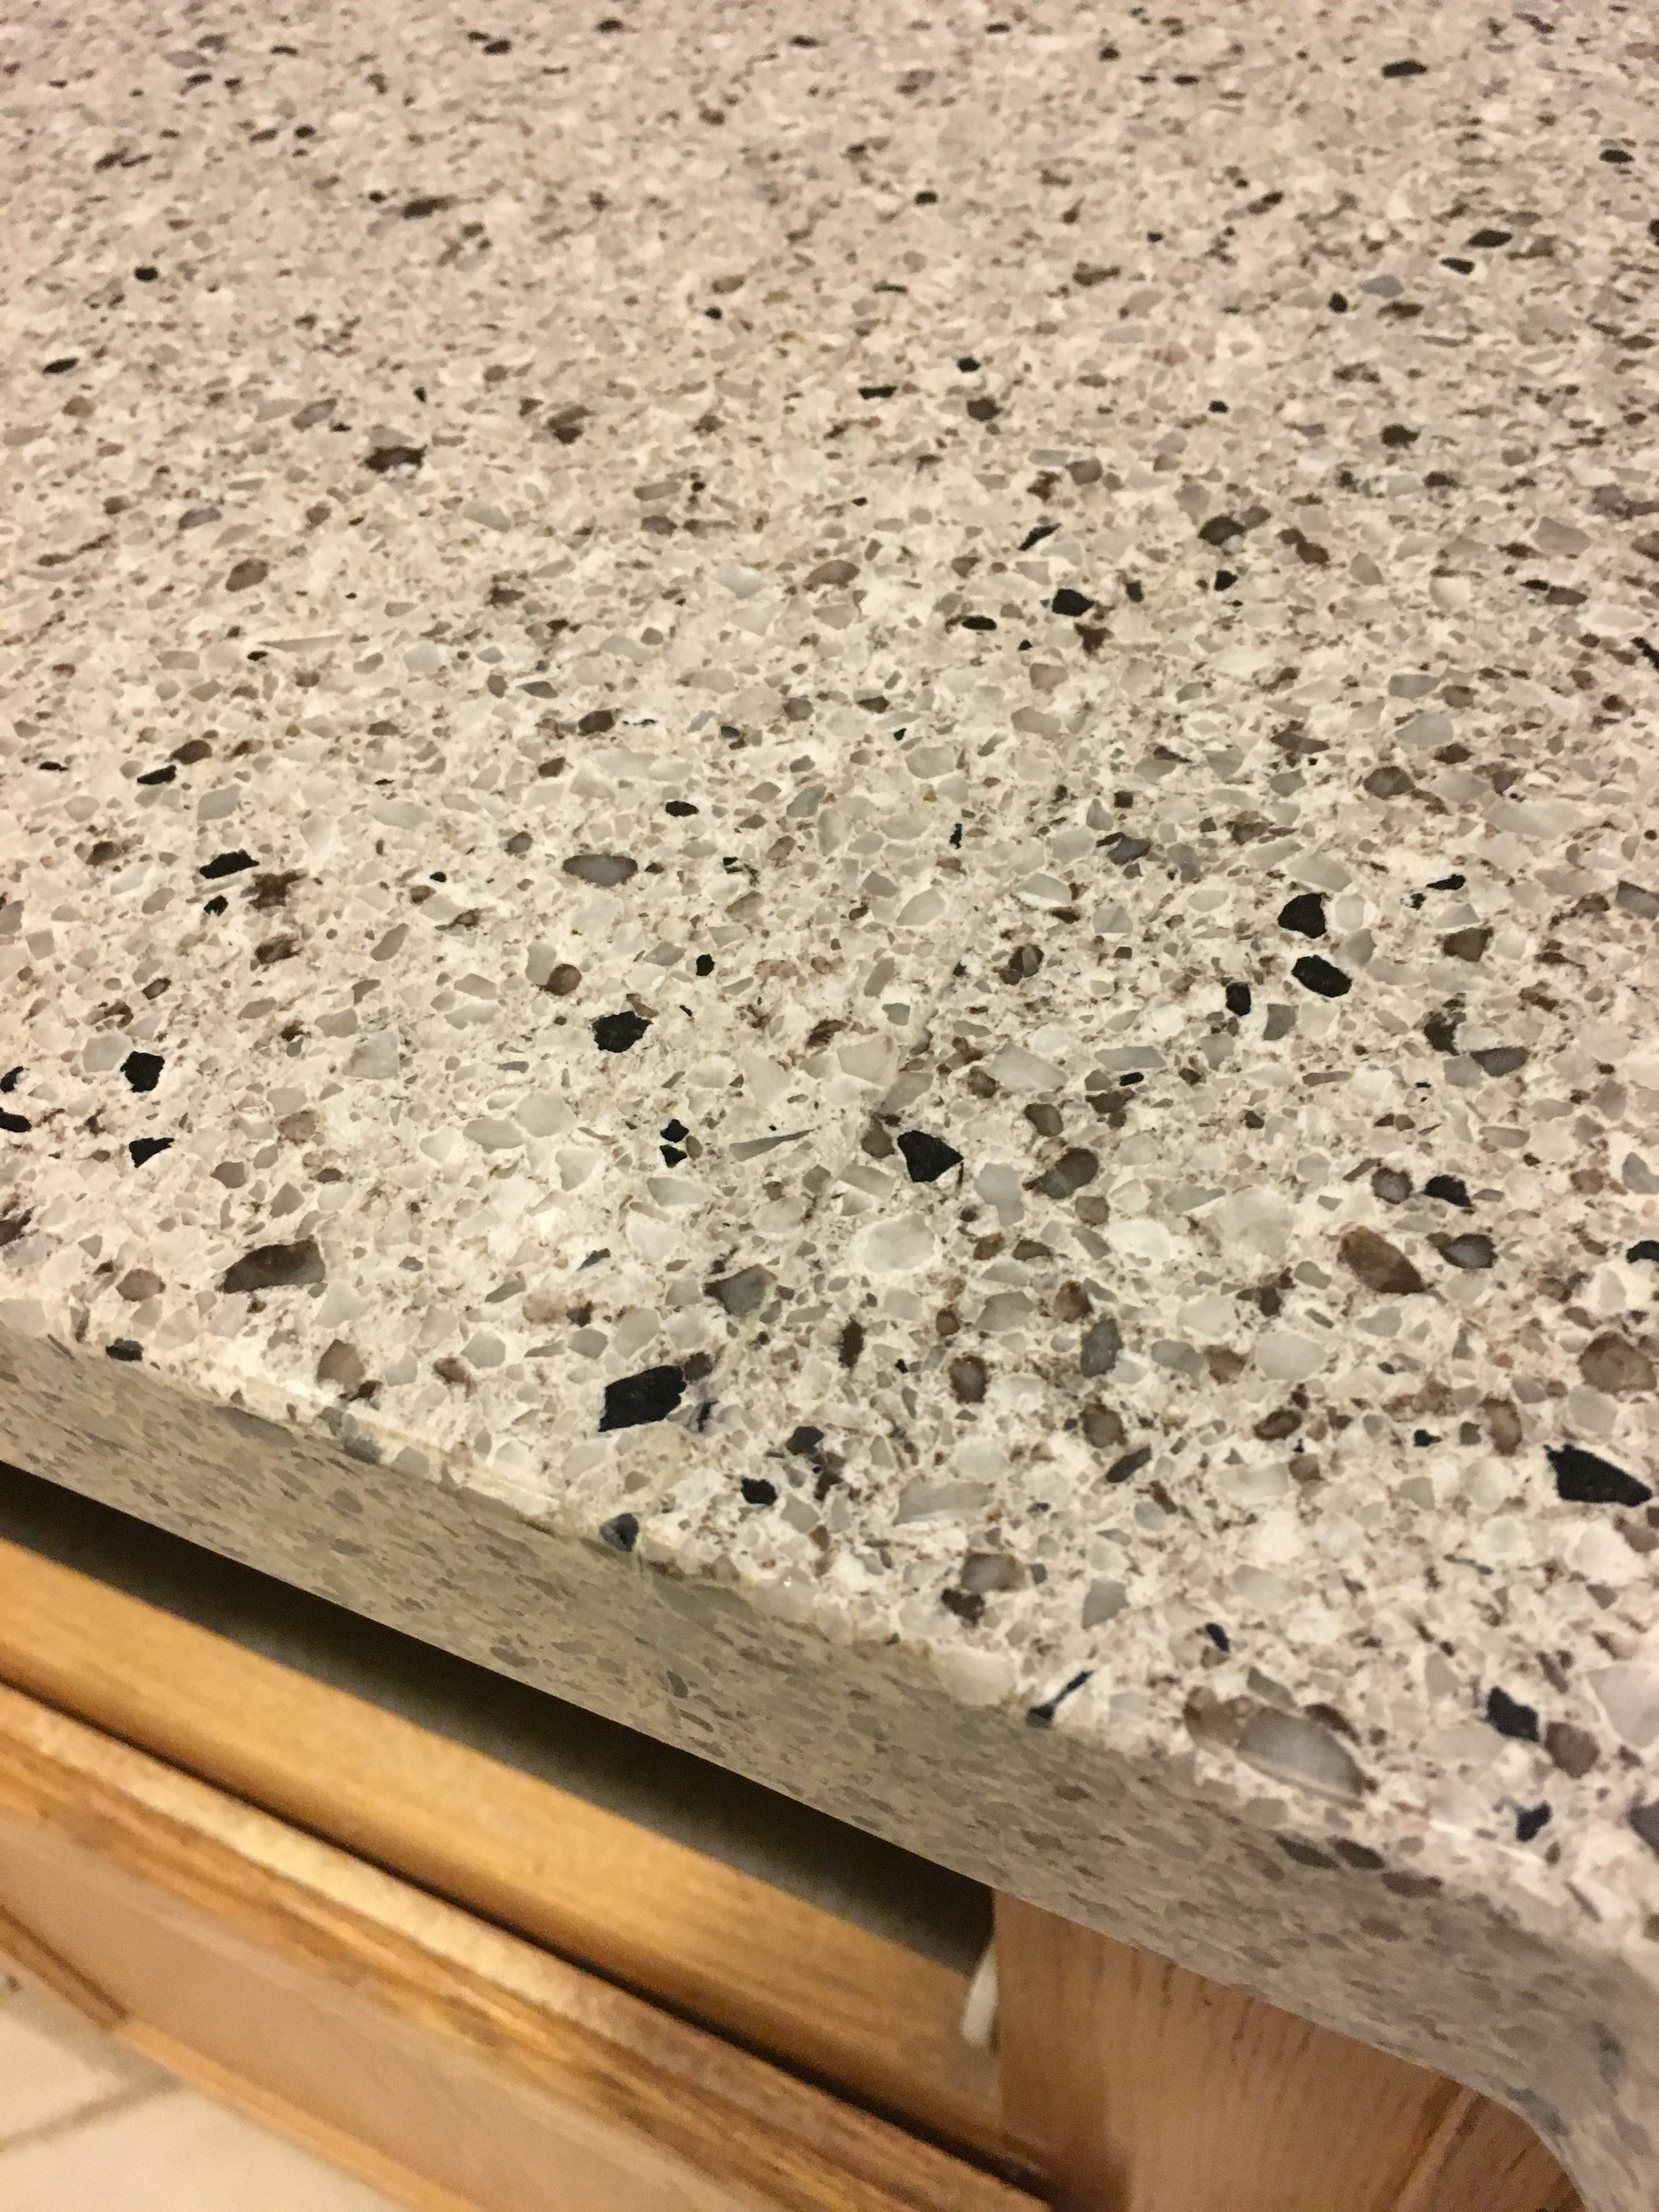 Inexpensive Countertops Home Depot Countertop Estimator Home Depot Granite